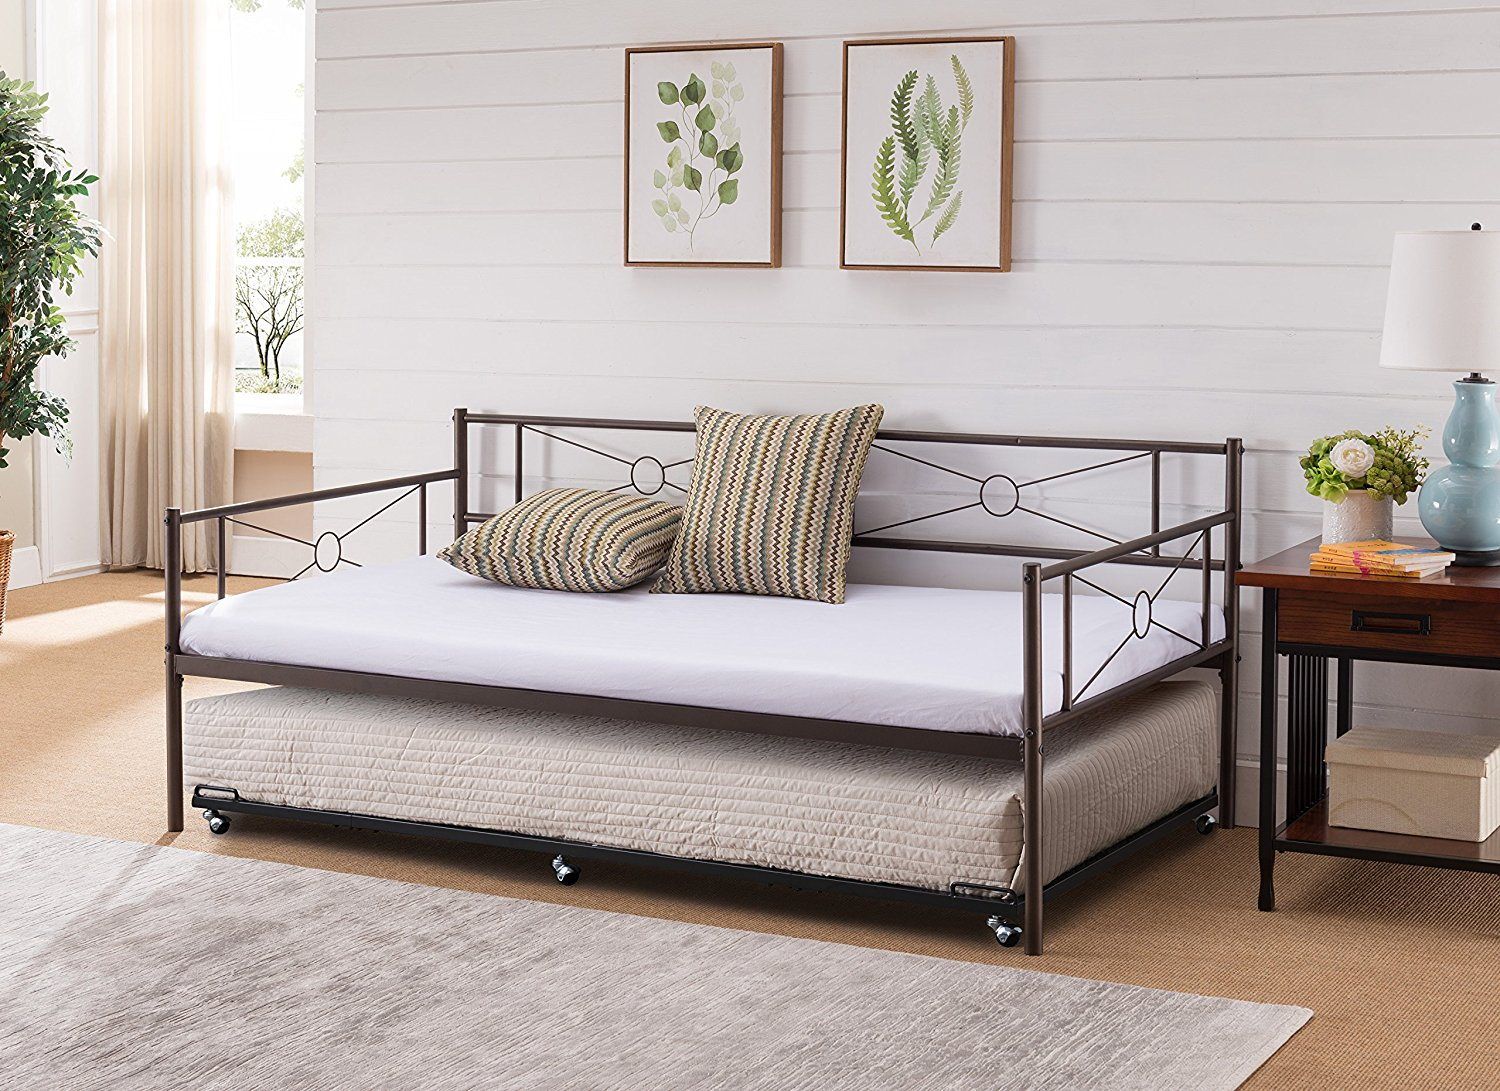 Cheap twin bed daybed find twin bed daybed deals on line at